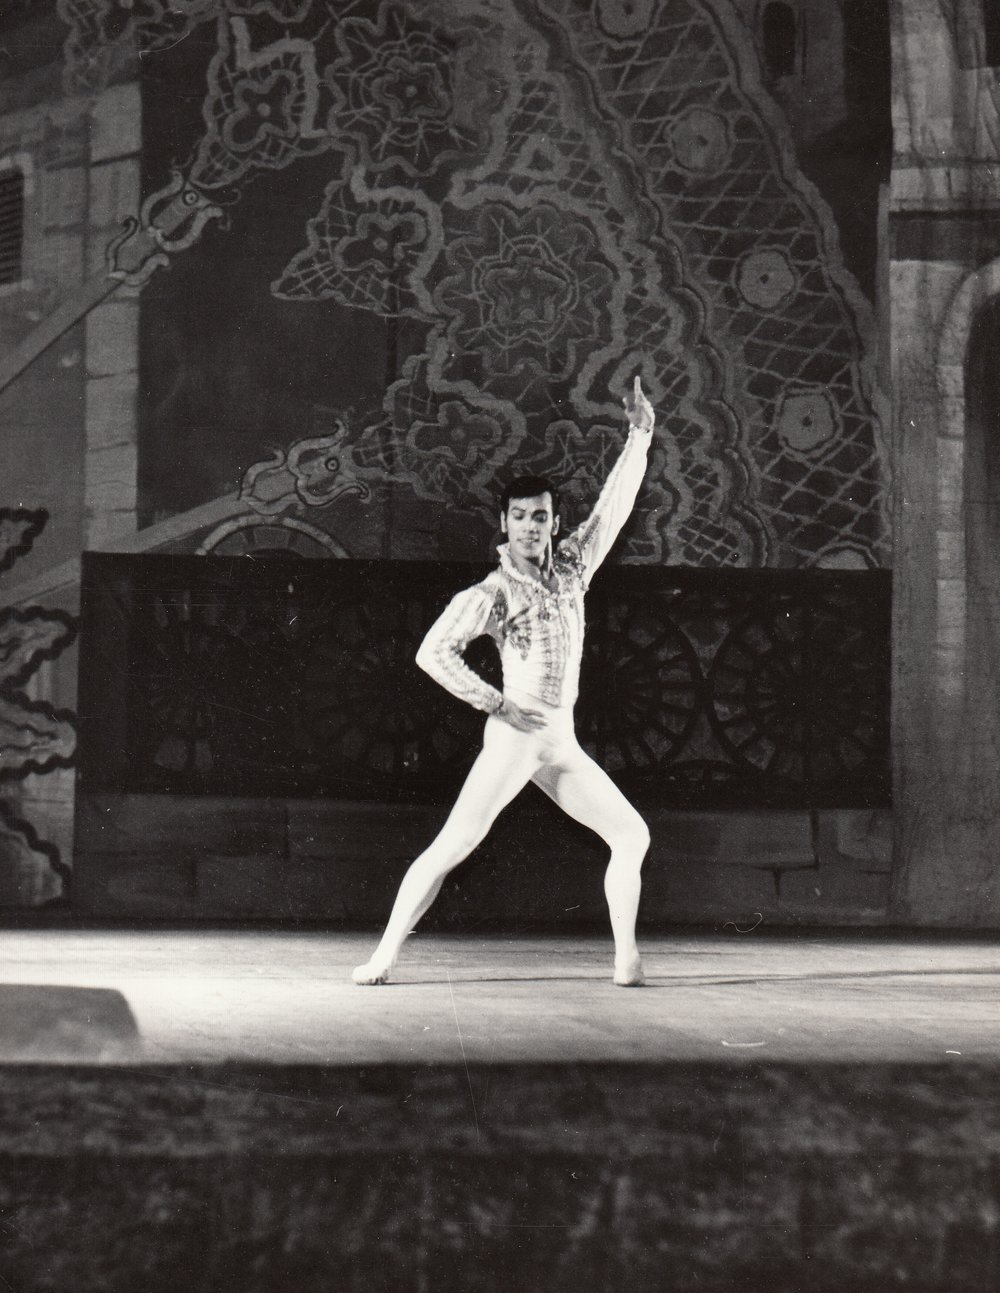 Osias Barroso rules the stage as Basilio in a performance of    Don Quixote    in Ulan-Ude, Russia in 1994. Image courtesy of the Ballet Manila Archives